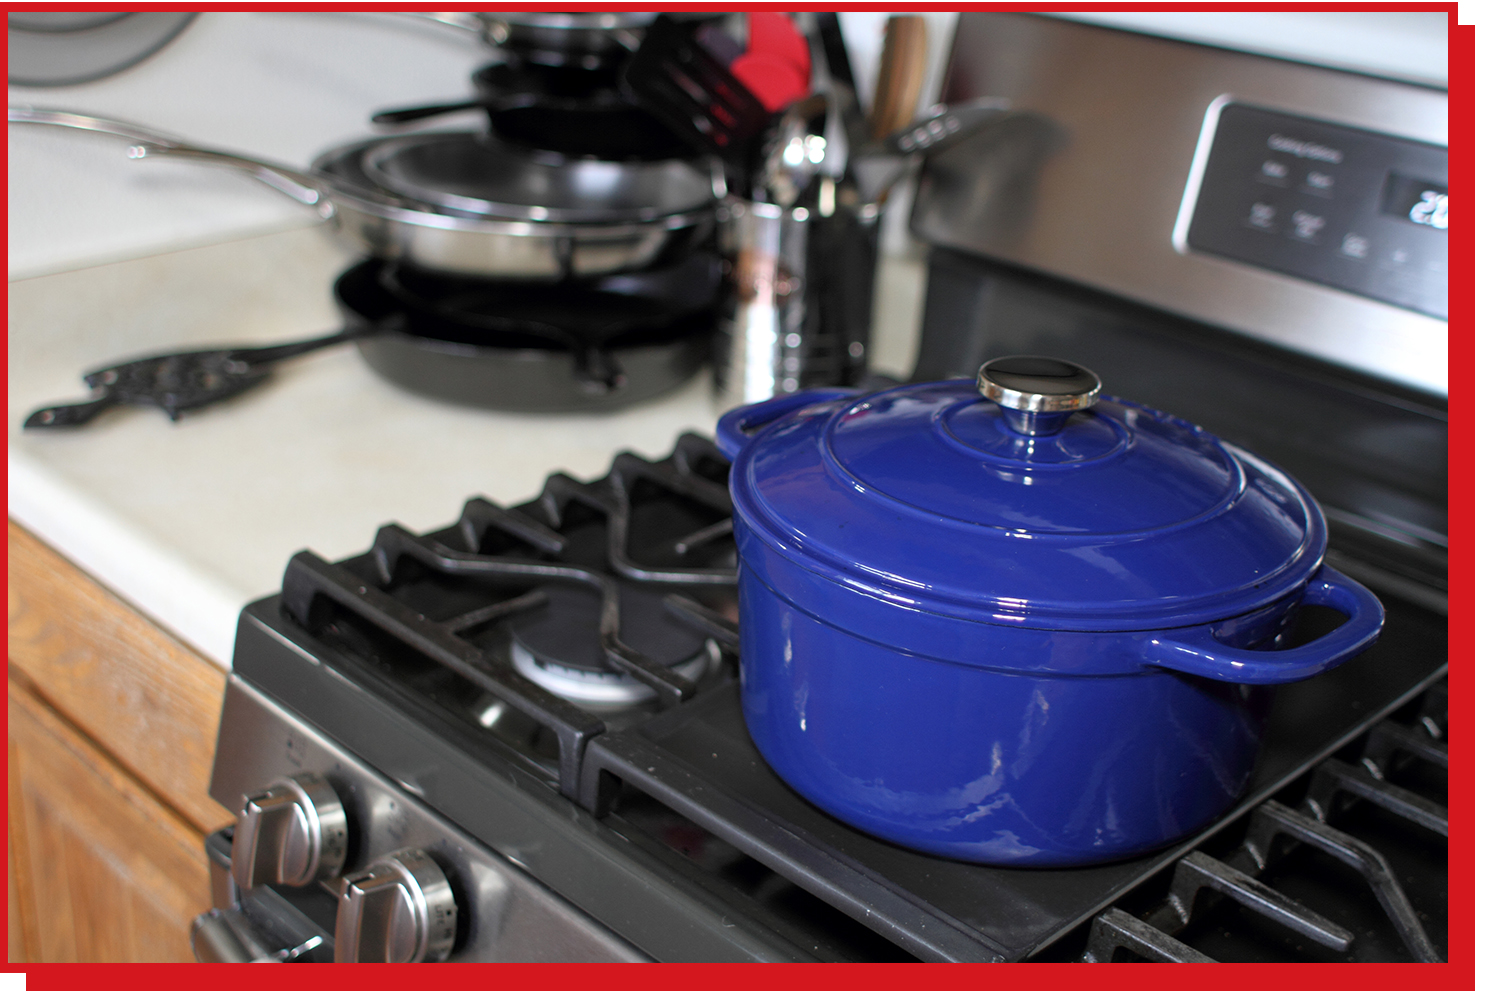 A blue Dutch oven with lid sitting on top of a stove.